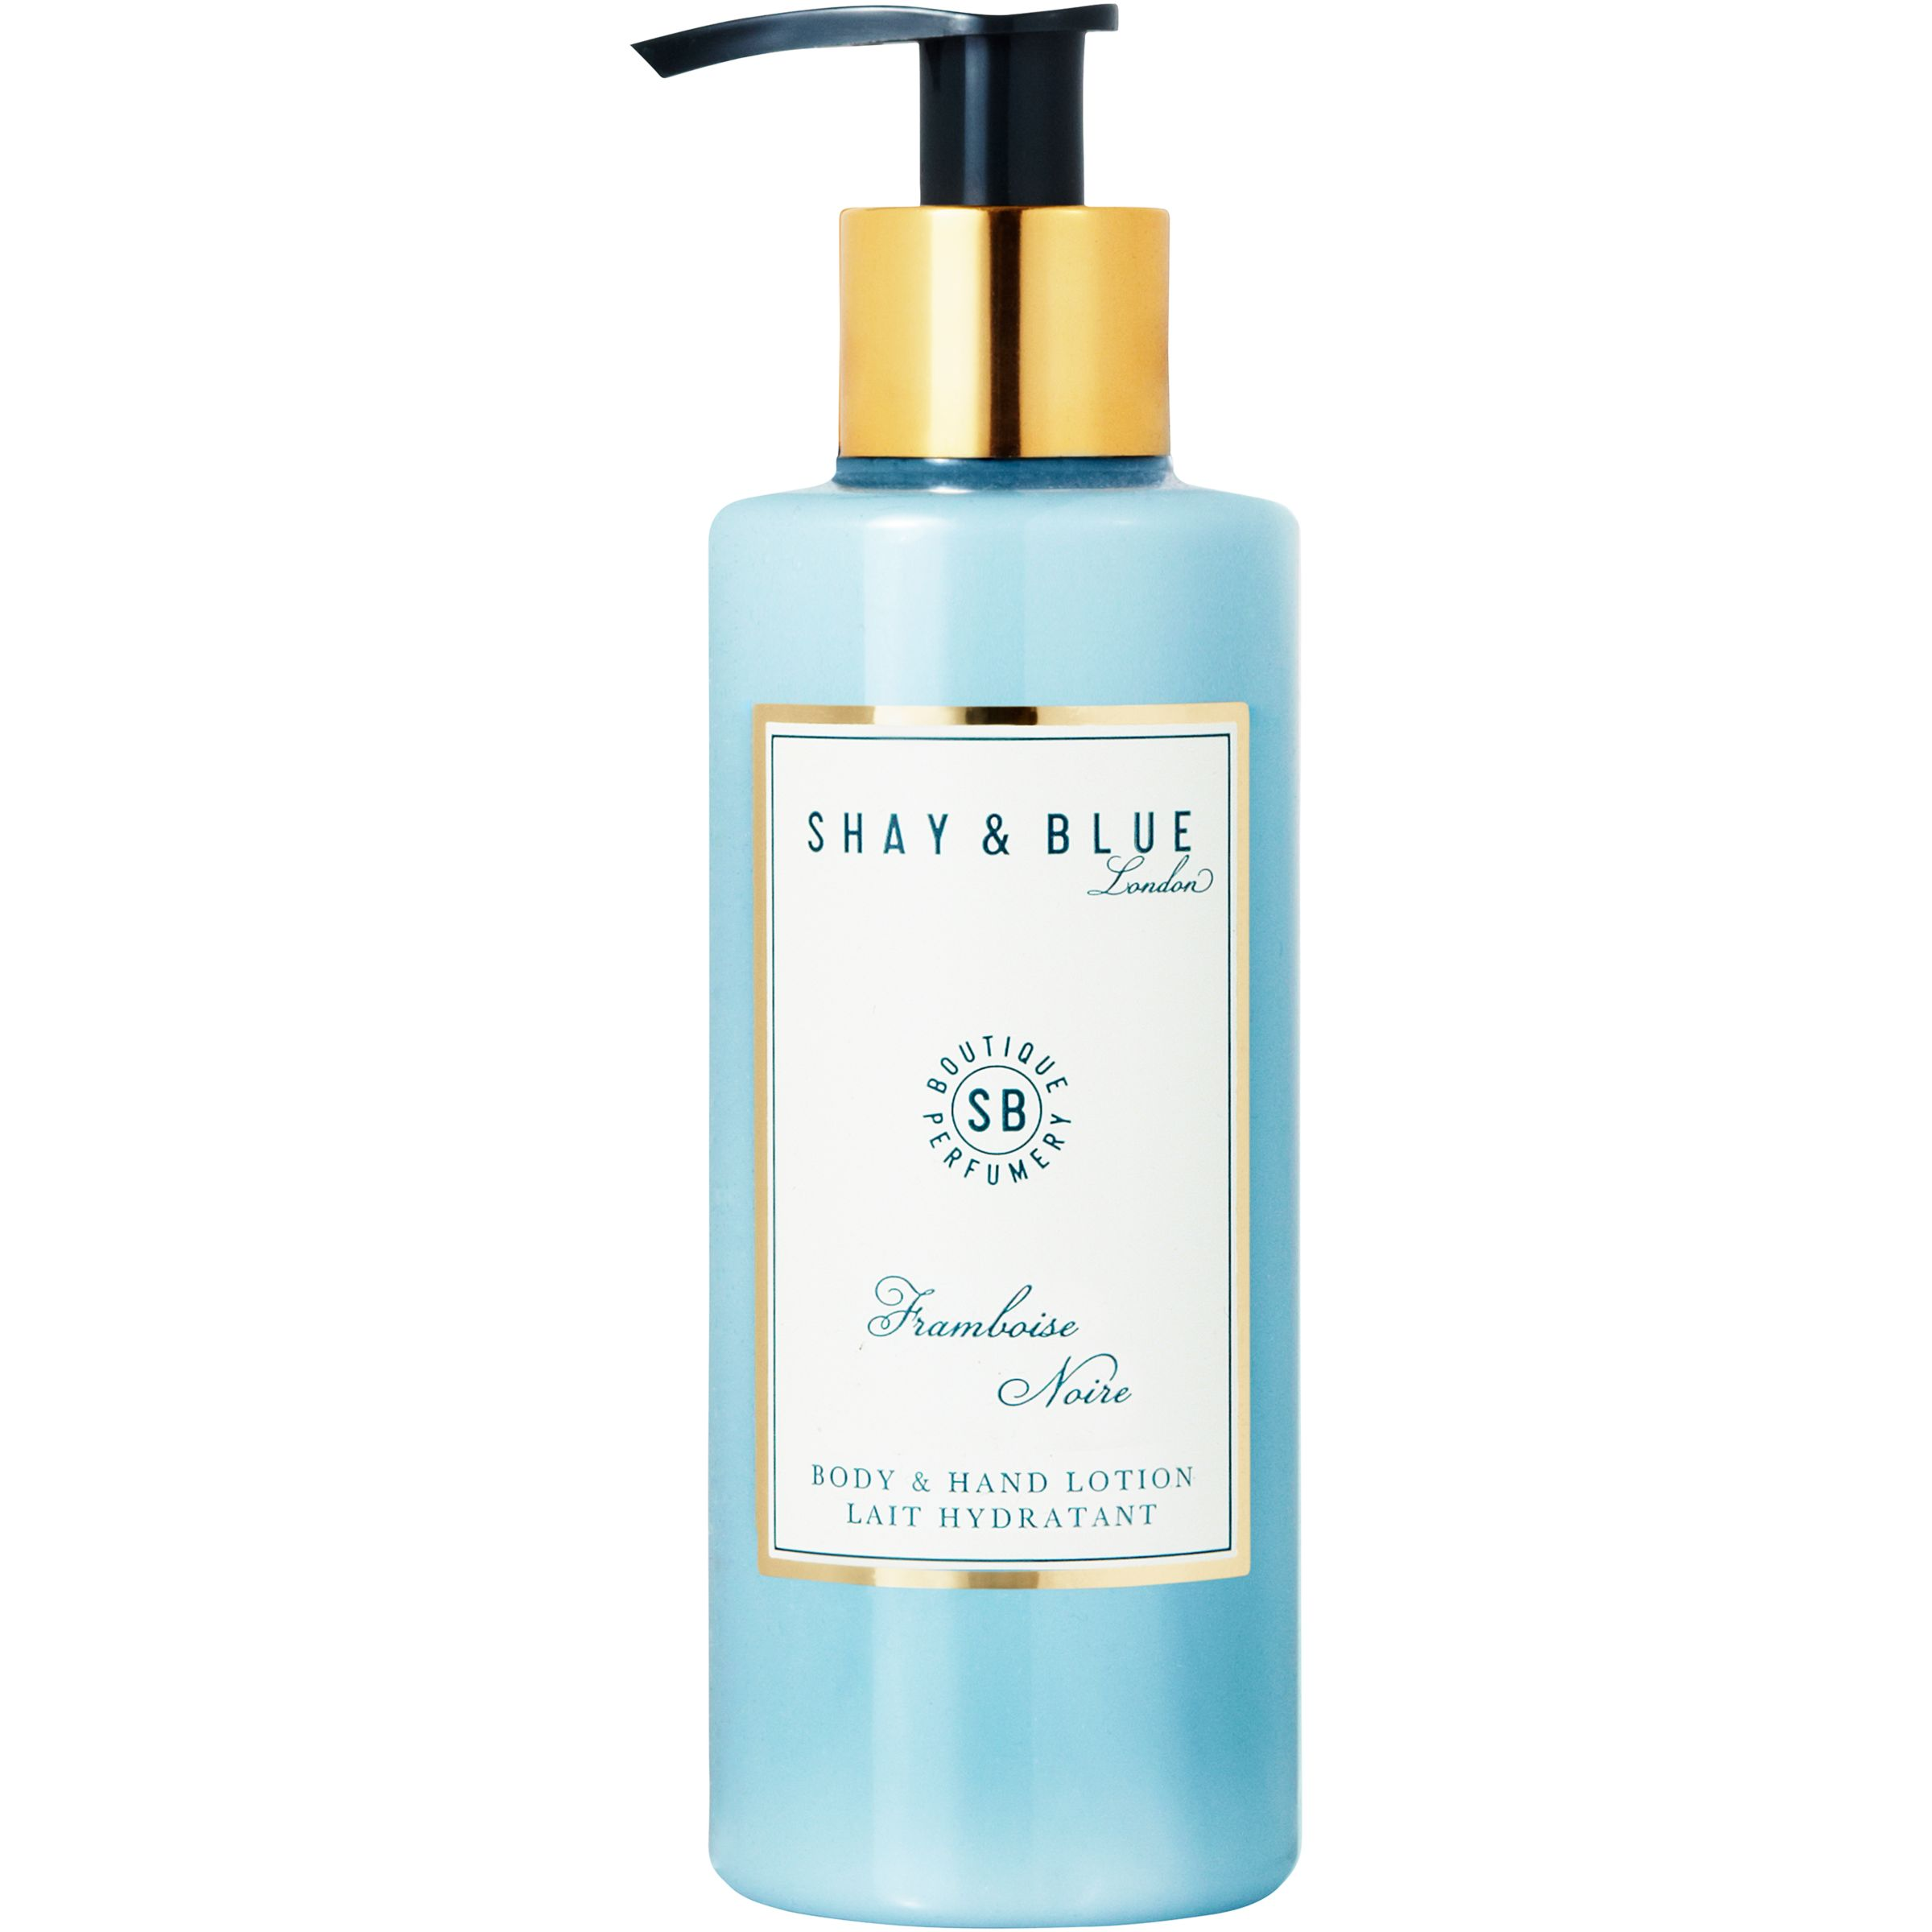 Shay & Blue Shay & Blue Framboise Noire Body & Hand Lotion, 200ml